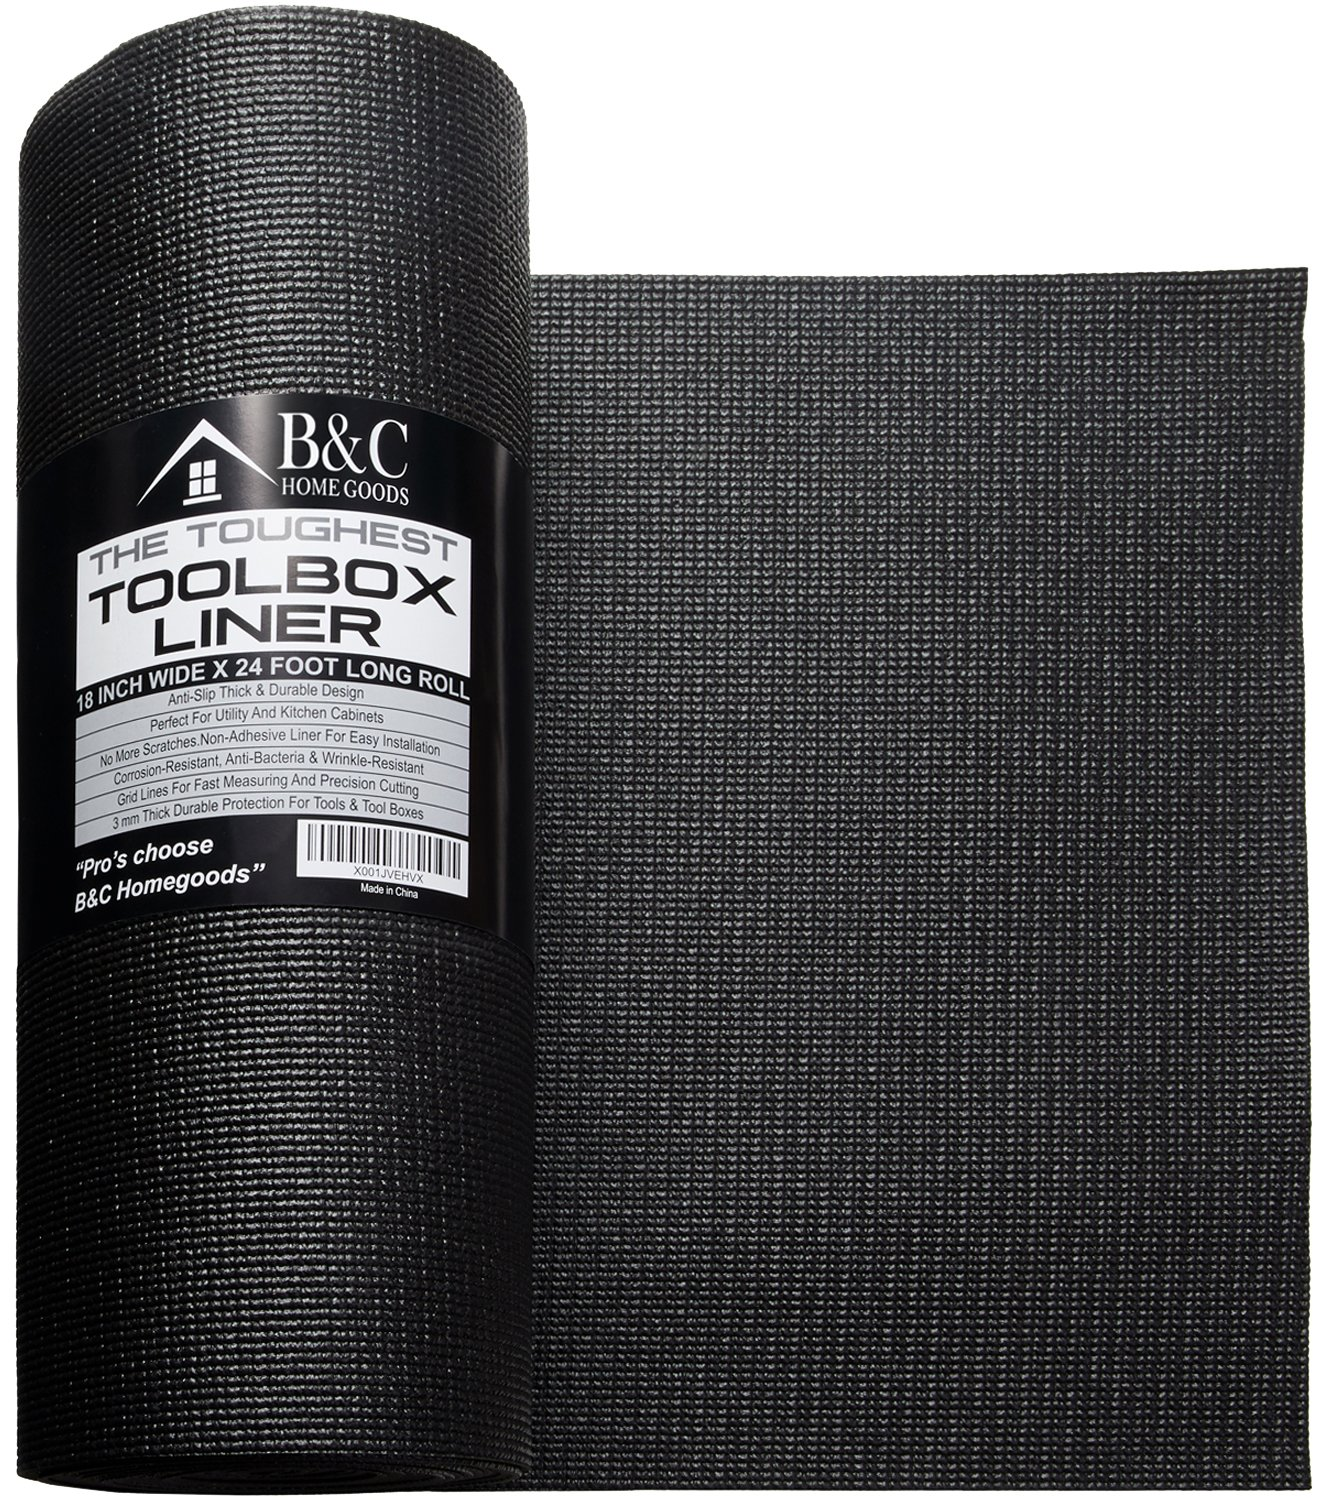 Professional Tool Box Liner and Drawer Liner - Black 18 Inch x 24 Feet Non-Slip Shelf Liner Is Perfect for Protecting Your Tools - These Thick Cabinet Liners Are Easily Adjustable to Fit Any Space by B&C Home Goods